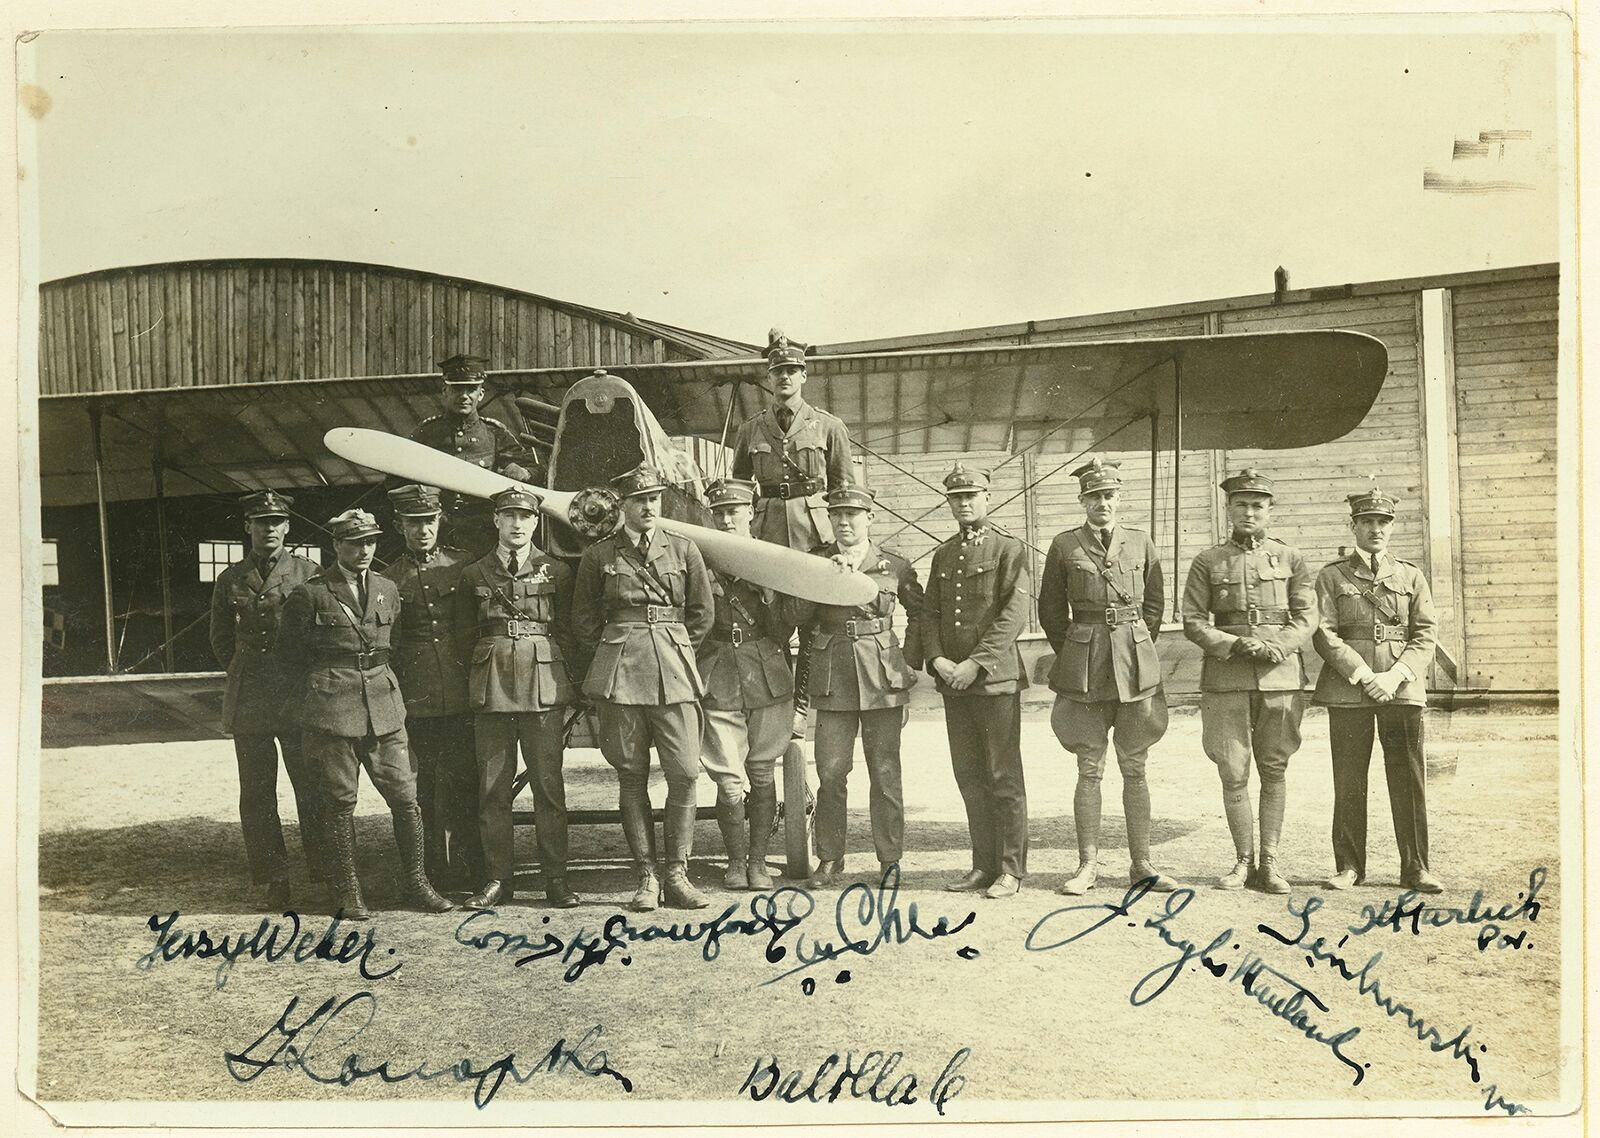 Original members of the Kosciuszko Squadron, Chess is the man whose face is partly hidden by the plane's propeller